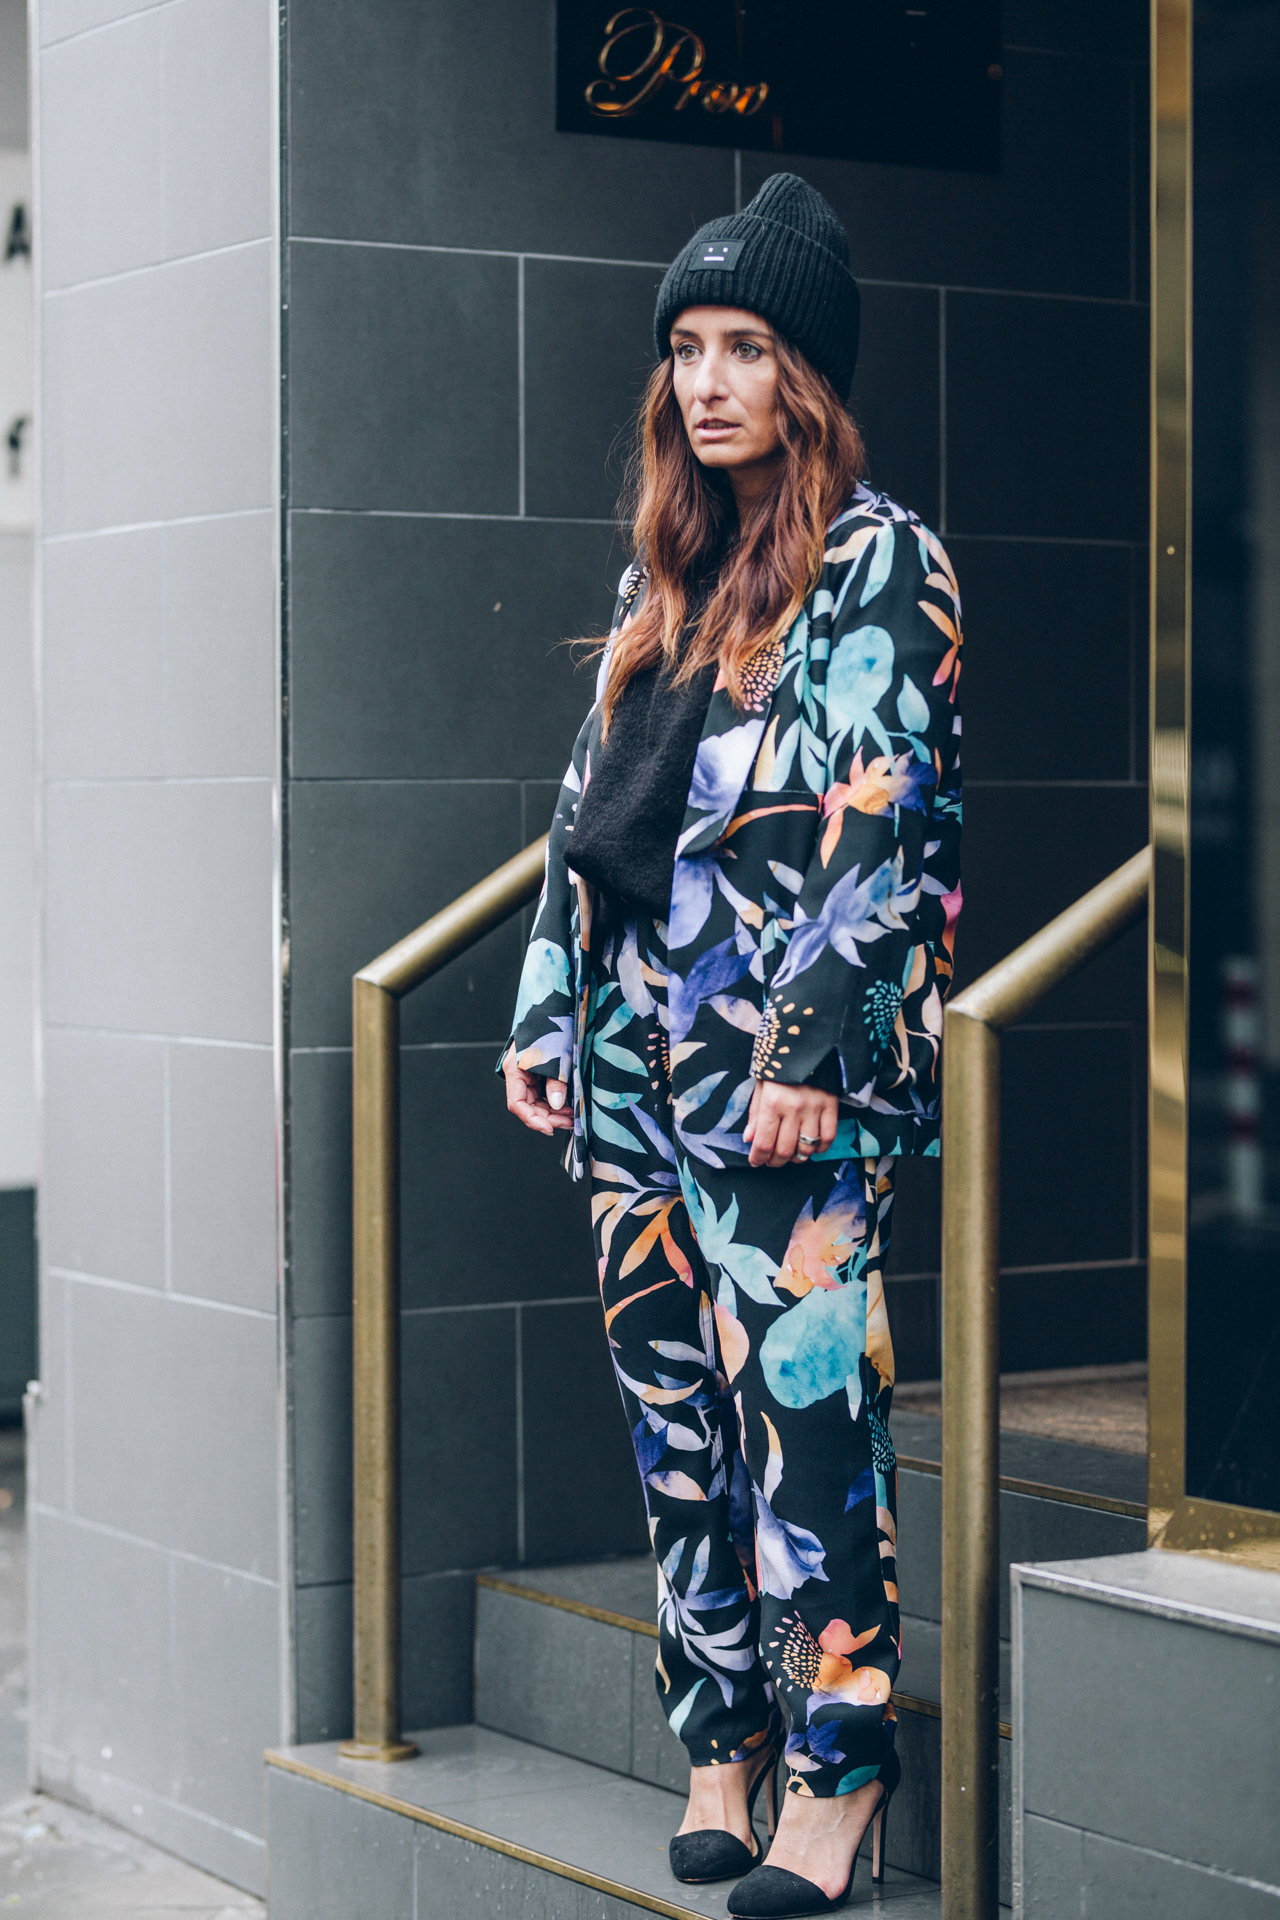 OUTFIT | All Over Look x Hosenanzug x Print x Blumen